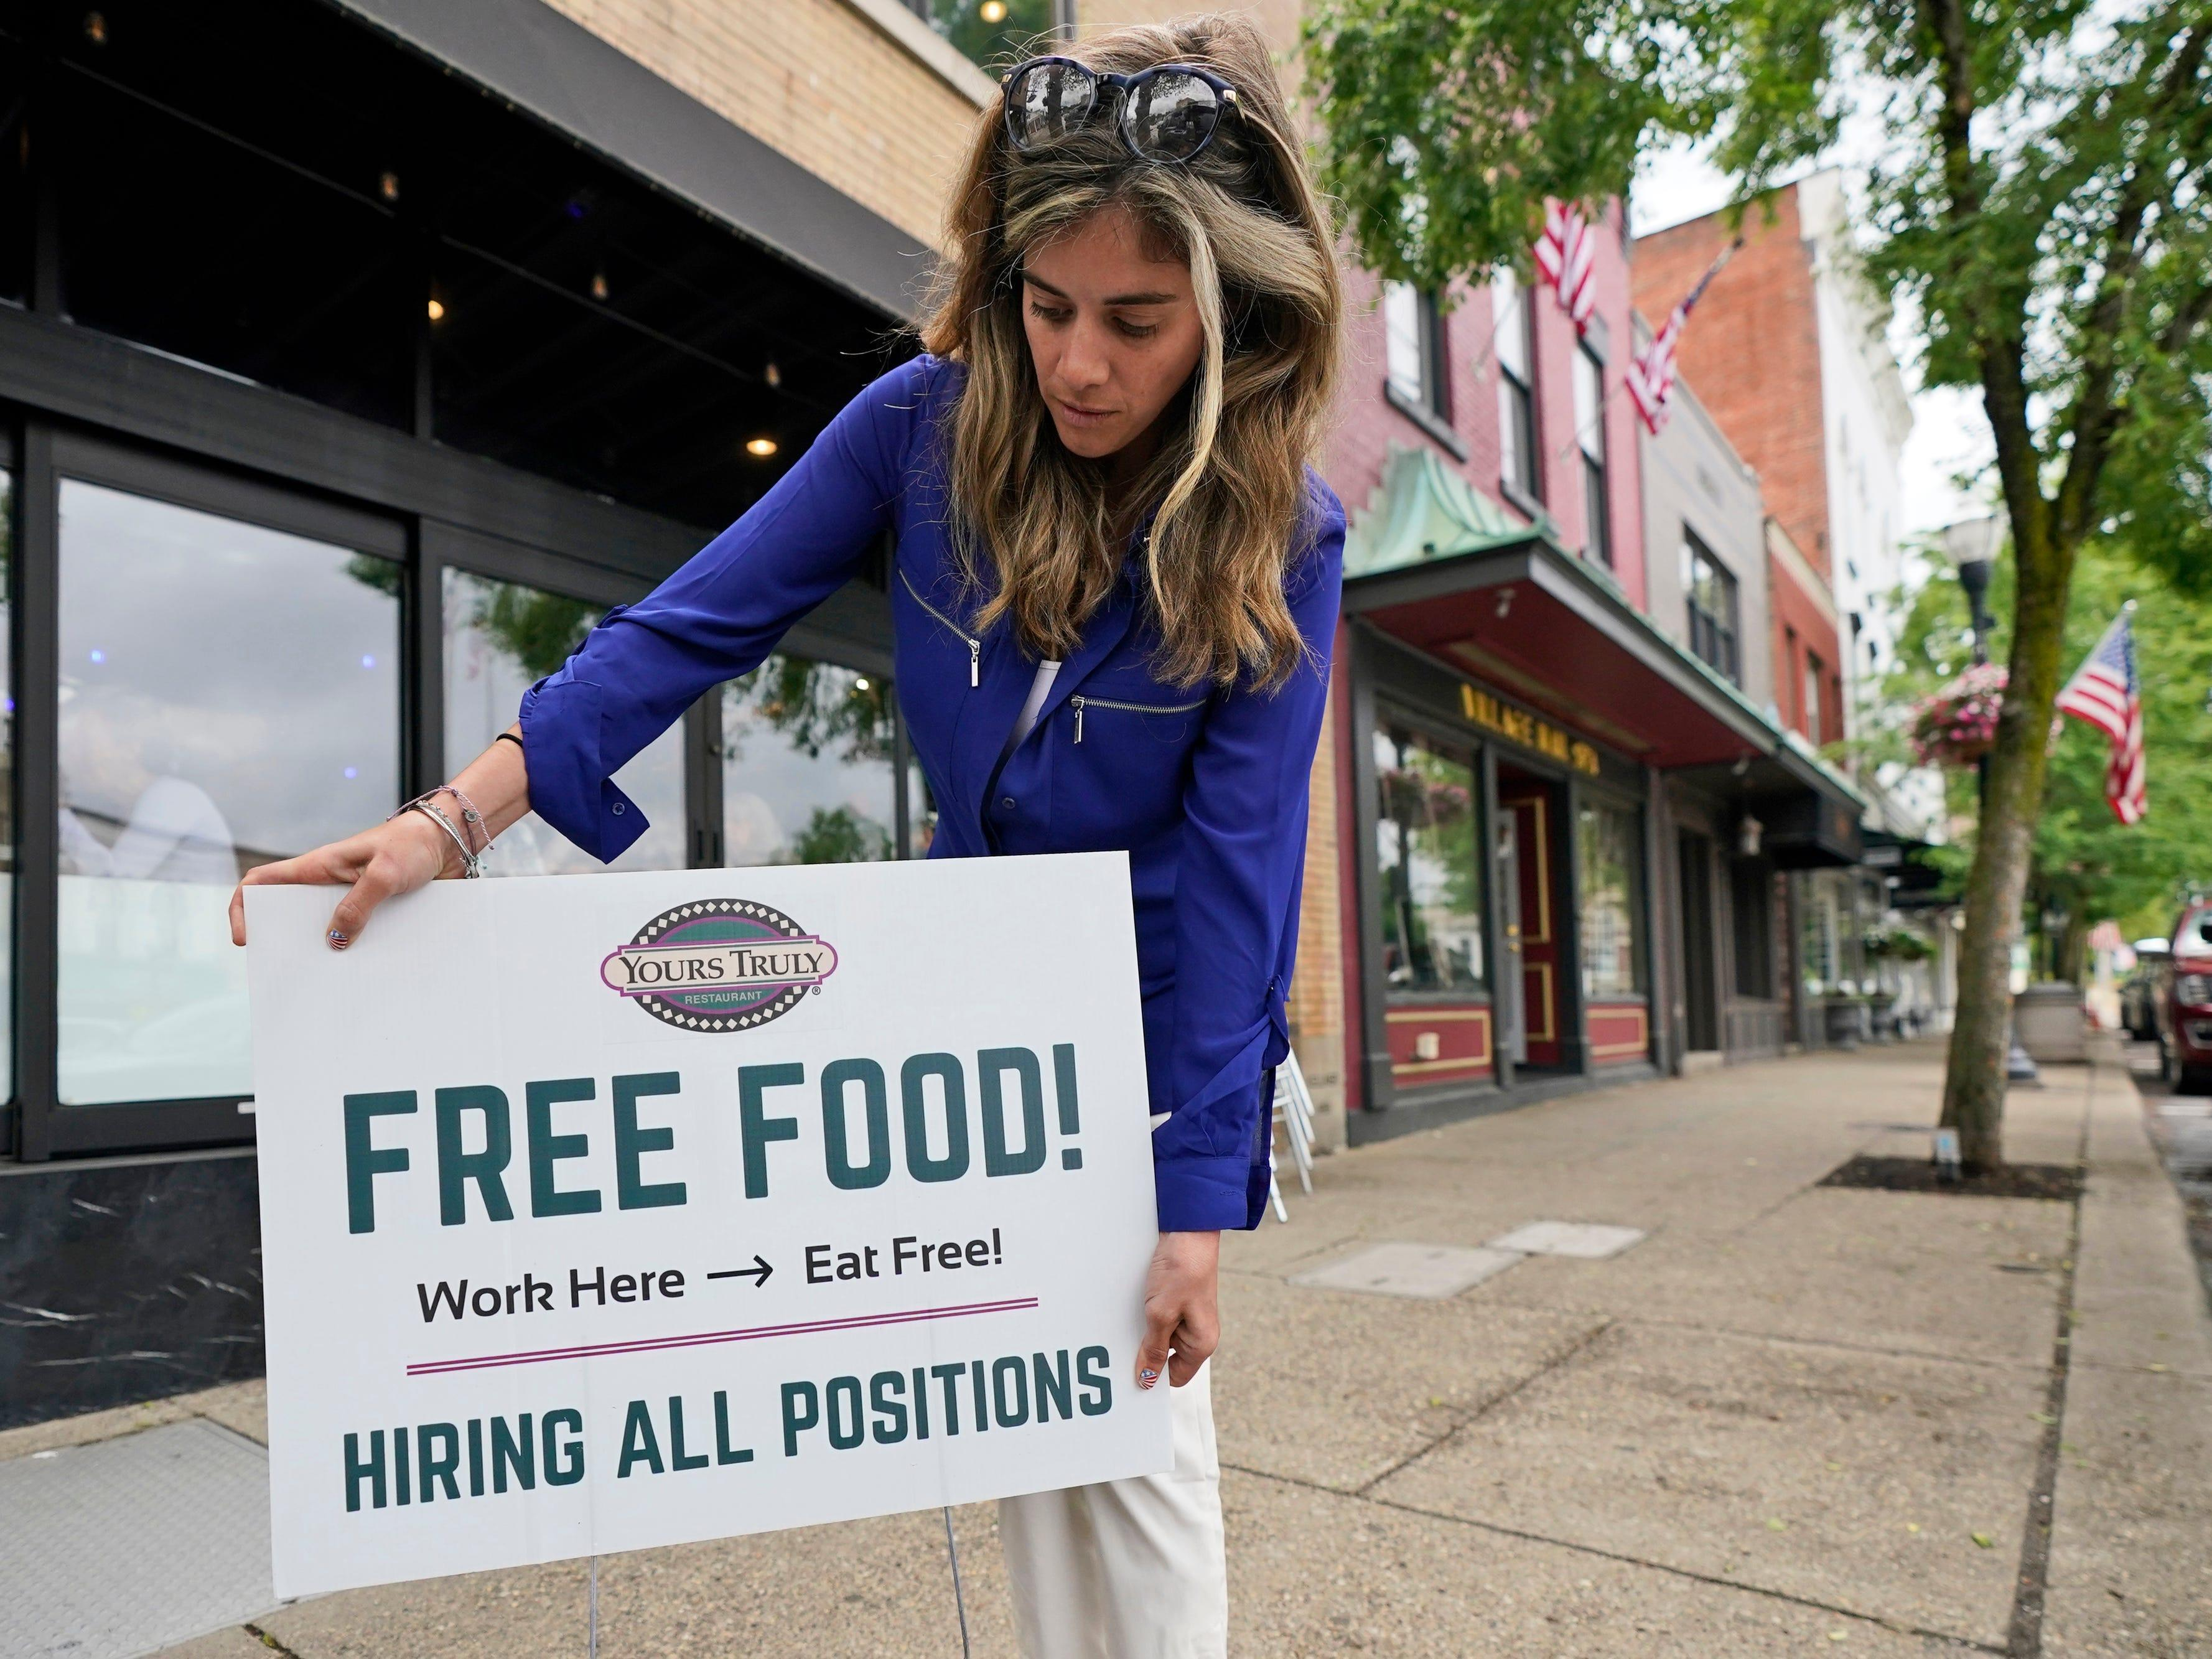 Employers say 'ghosting coasting' is a growing problem, but workers have their reasons for quietly walking away from a job